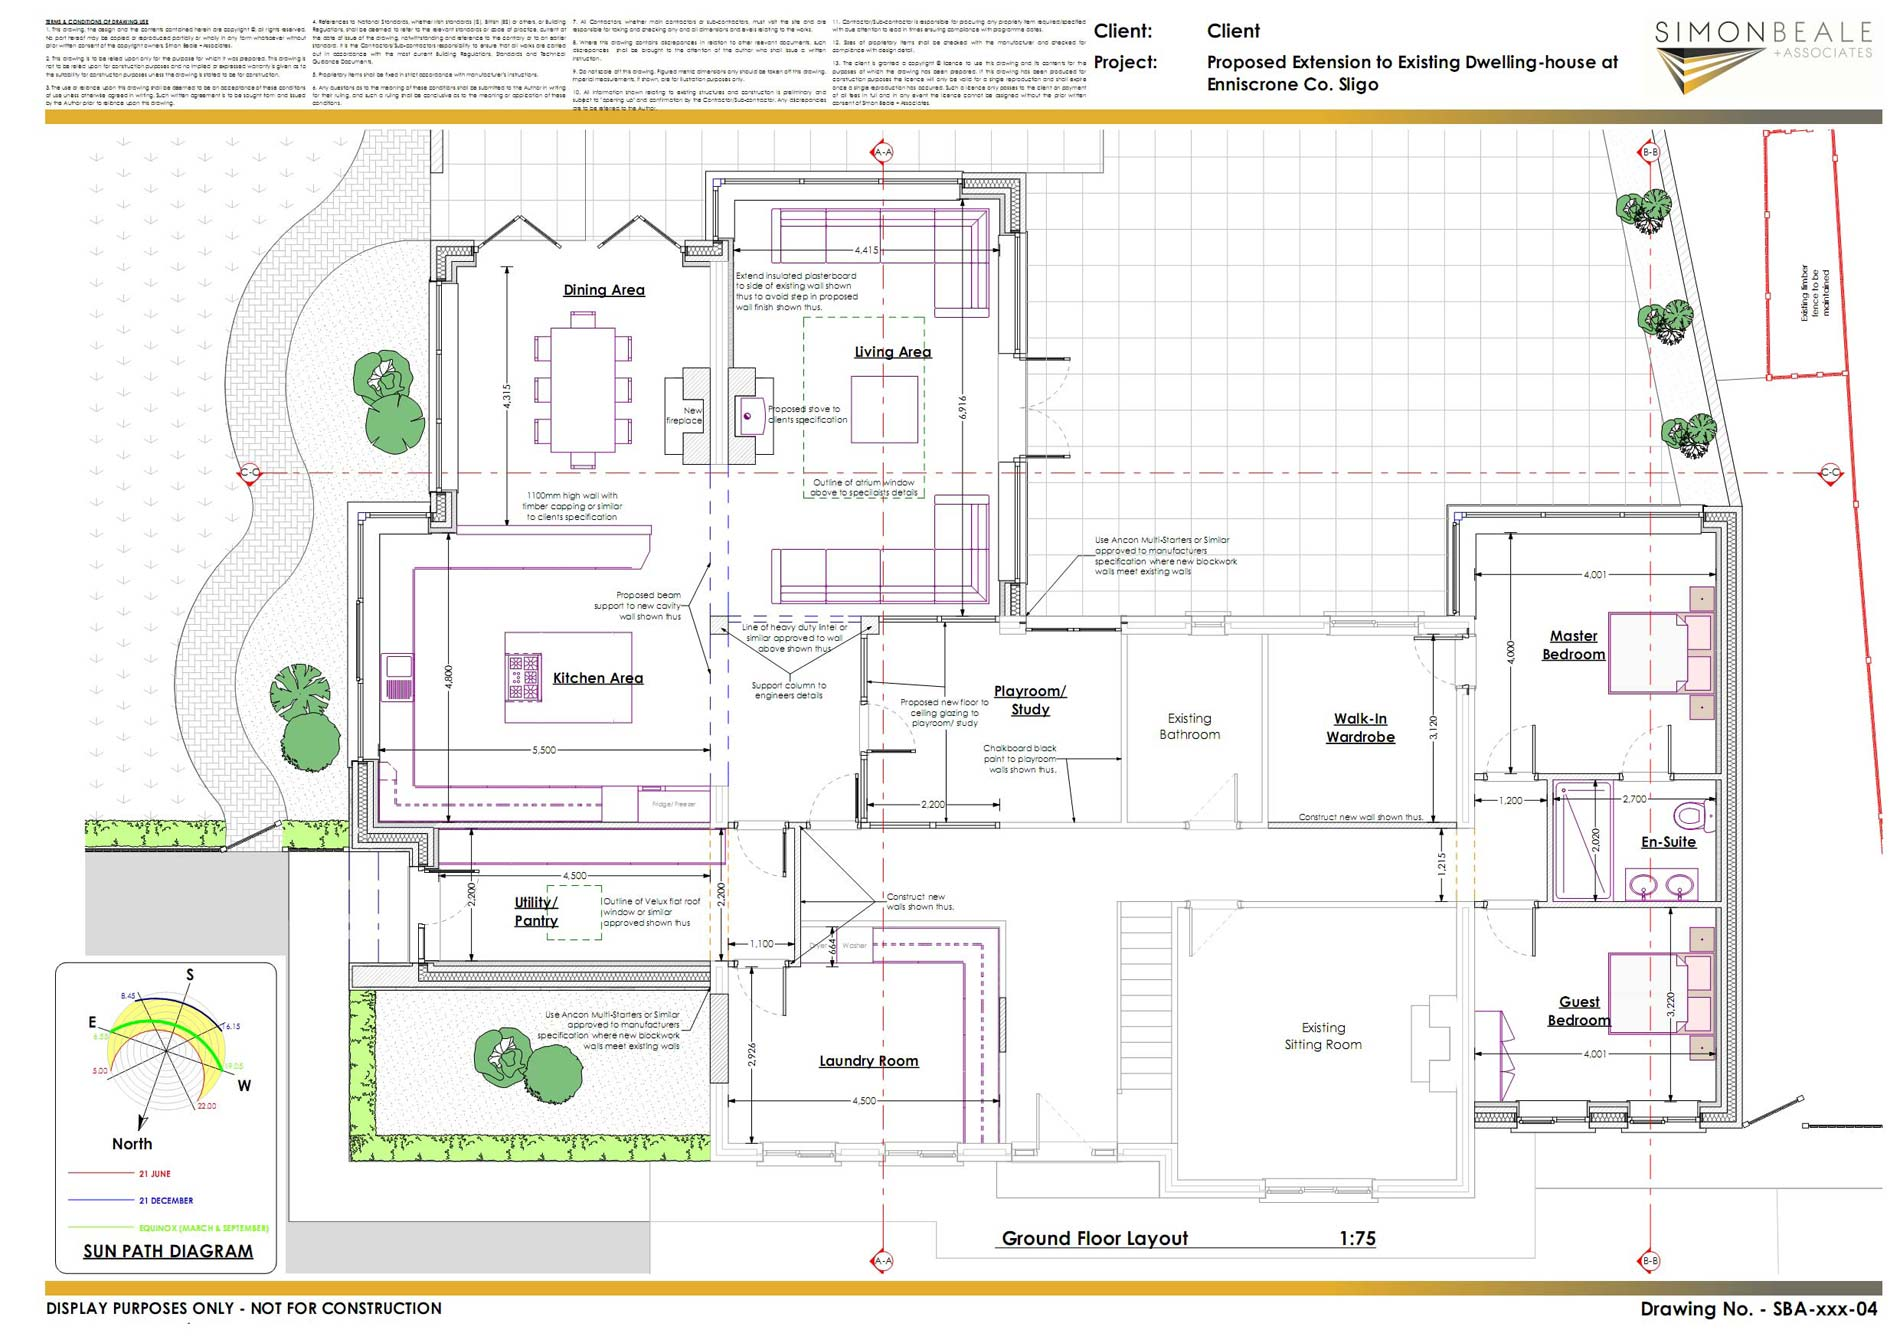 04 Ground Floor Layout_pagenumber.001